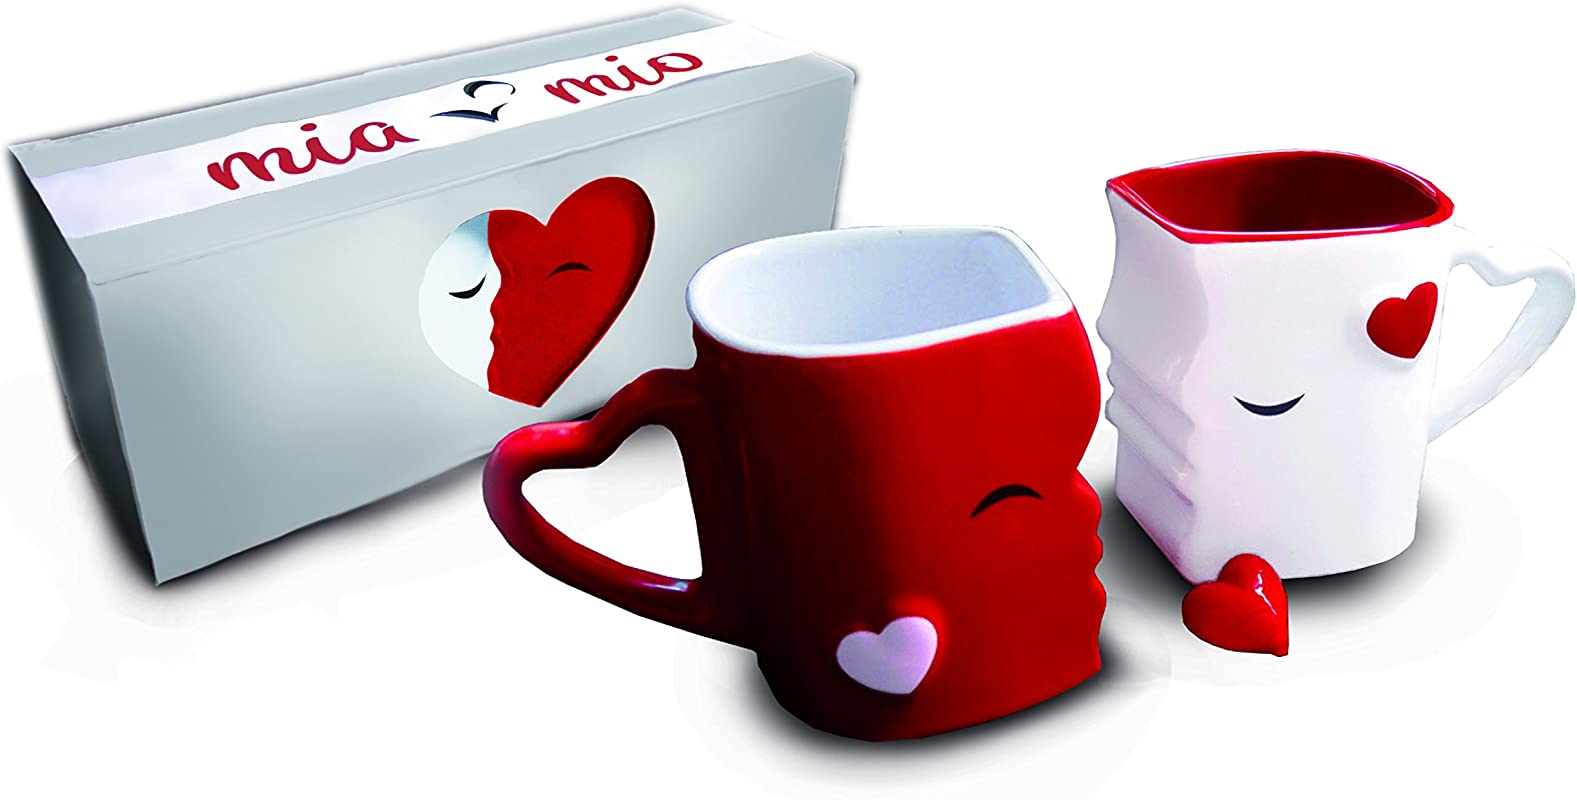 Mia Mio Coffee Mugs Kissing Mugs Bridal Pair Gift Set For Weddings Birthday Anniversary With Gift Box Red